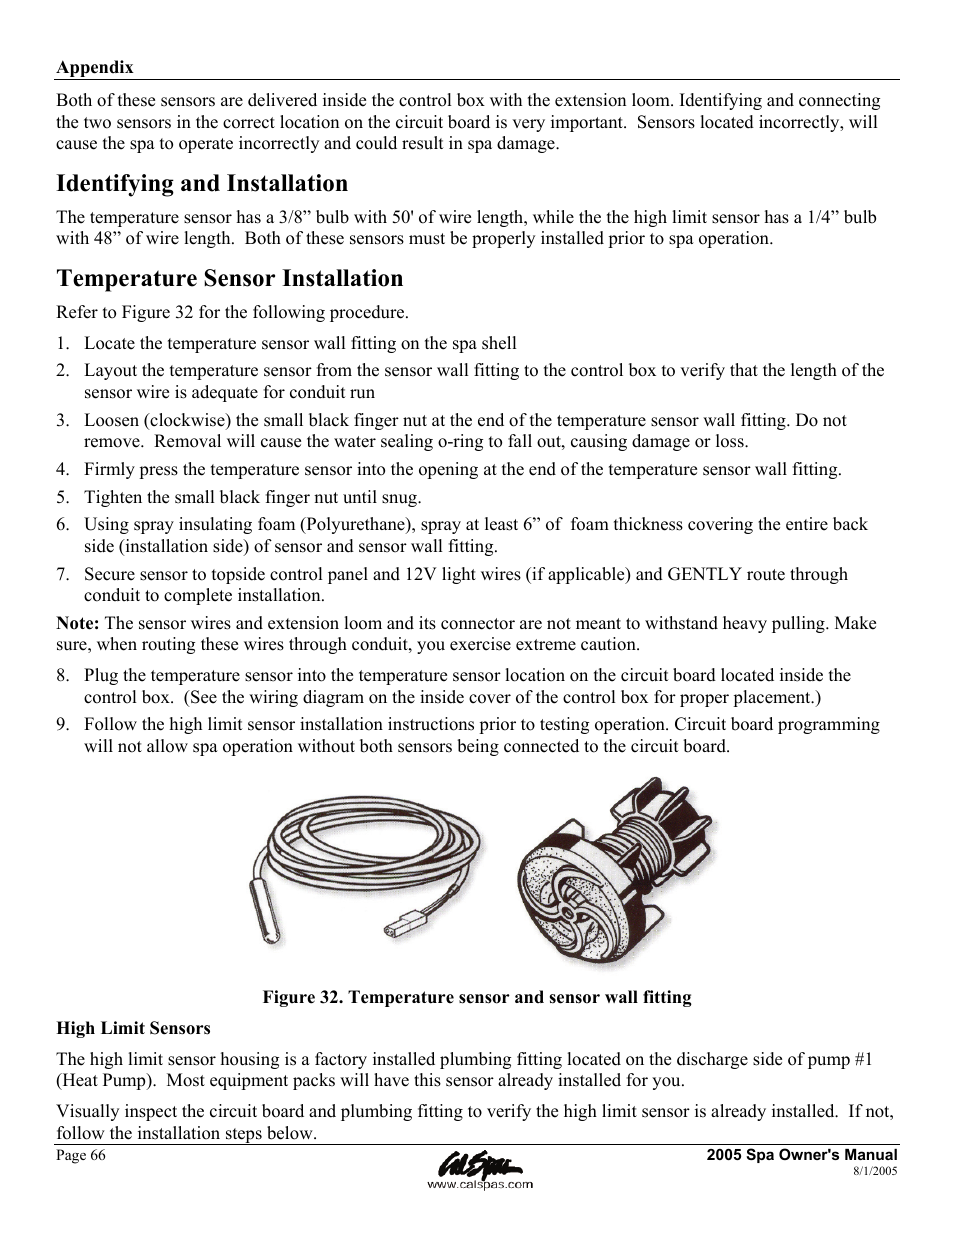 identifying and installation, temperature sensor installation | cal spas  ltr20051000 user manual | page 70 / 120